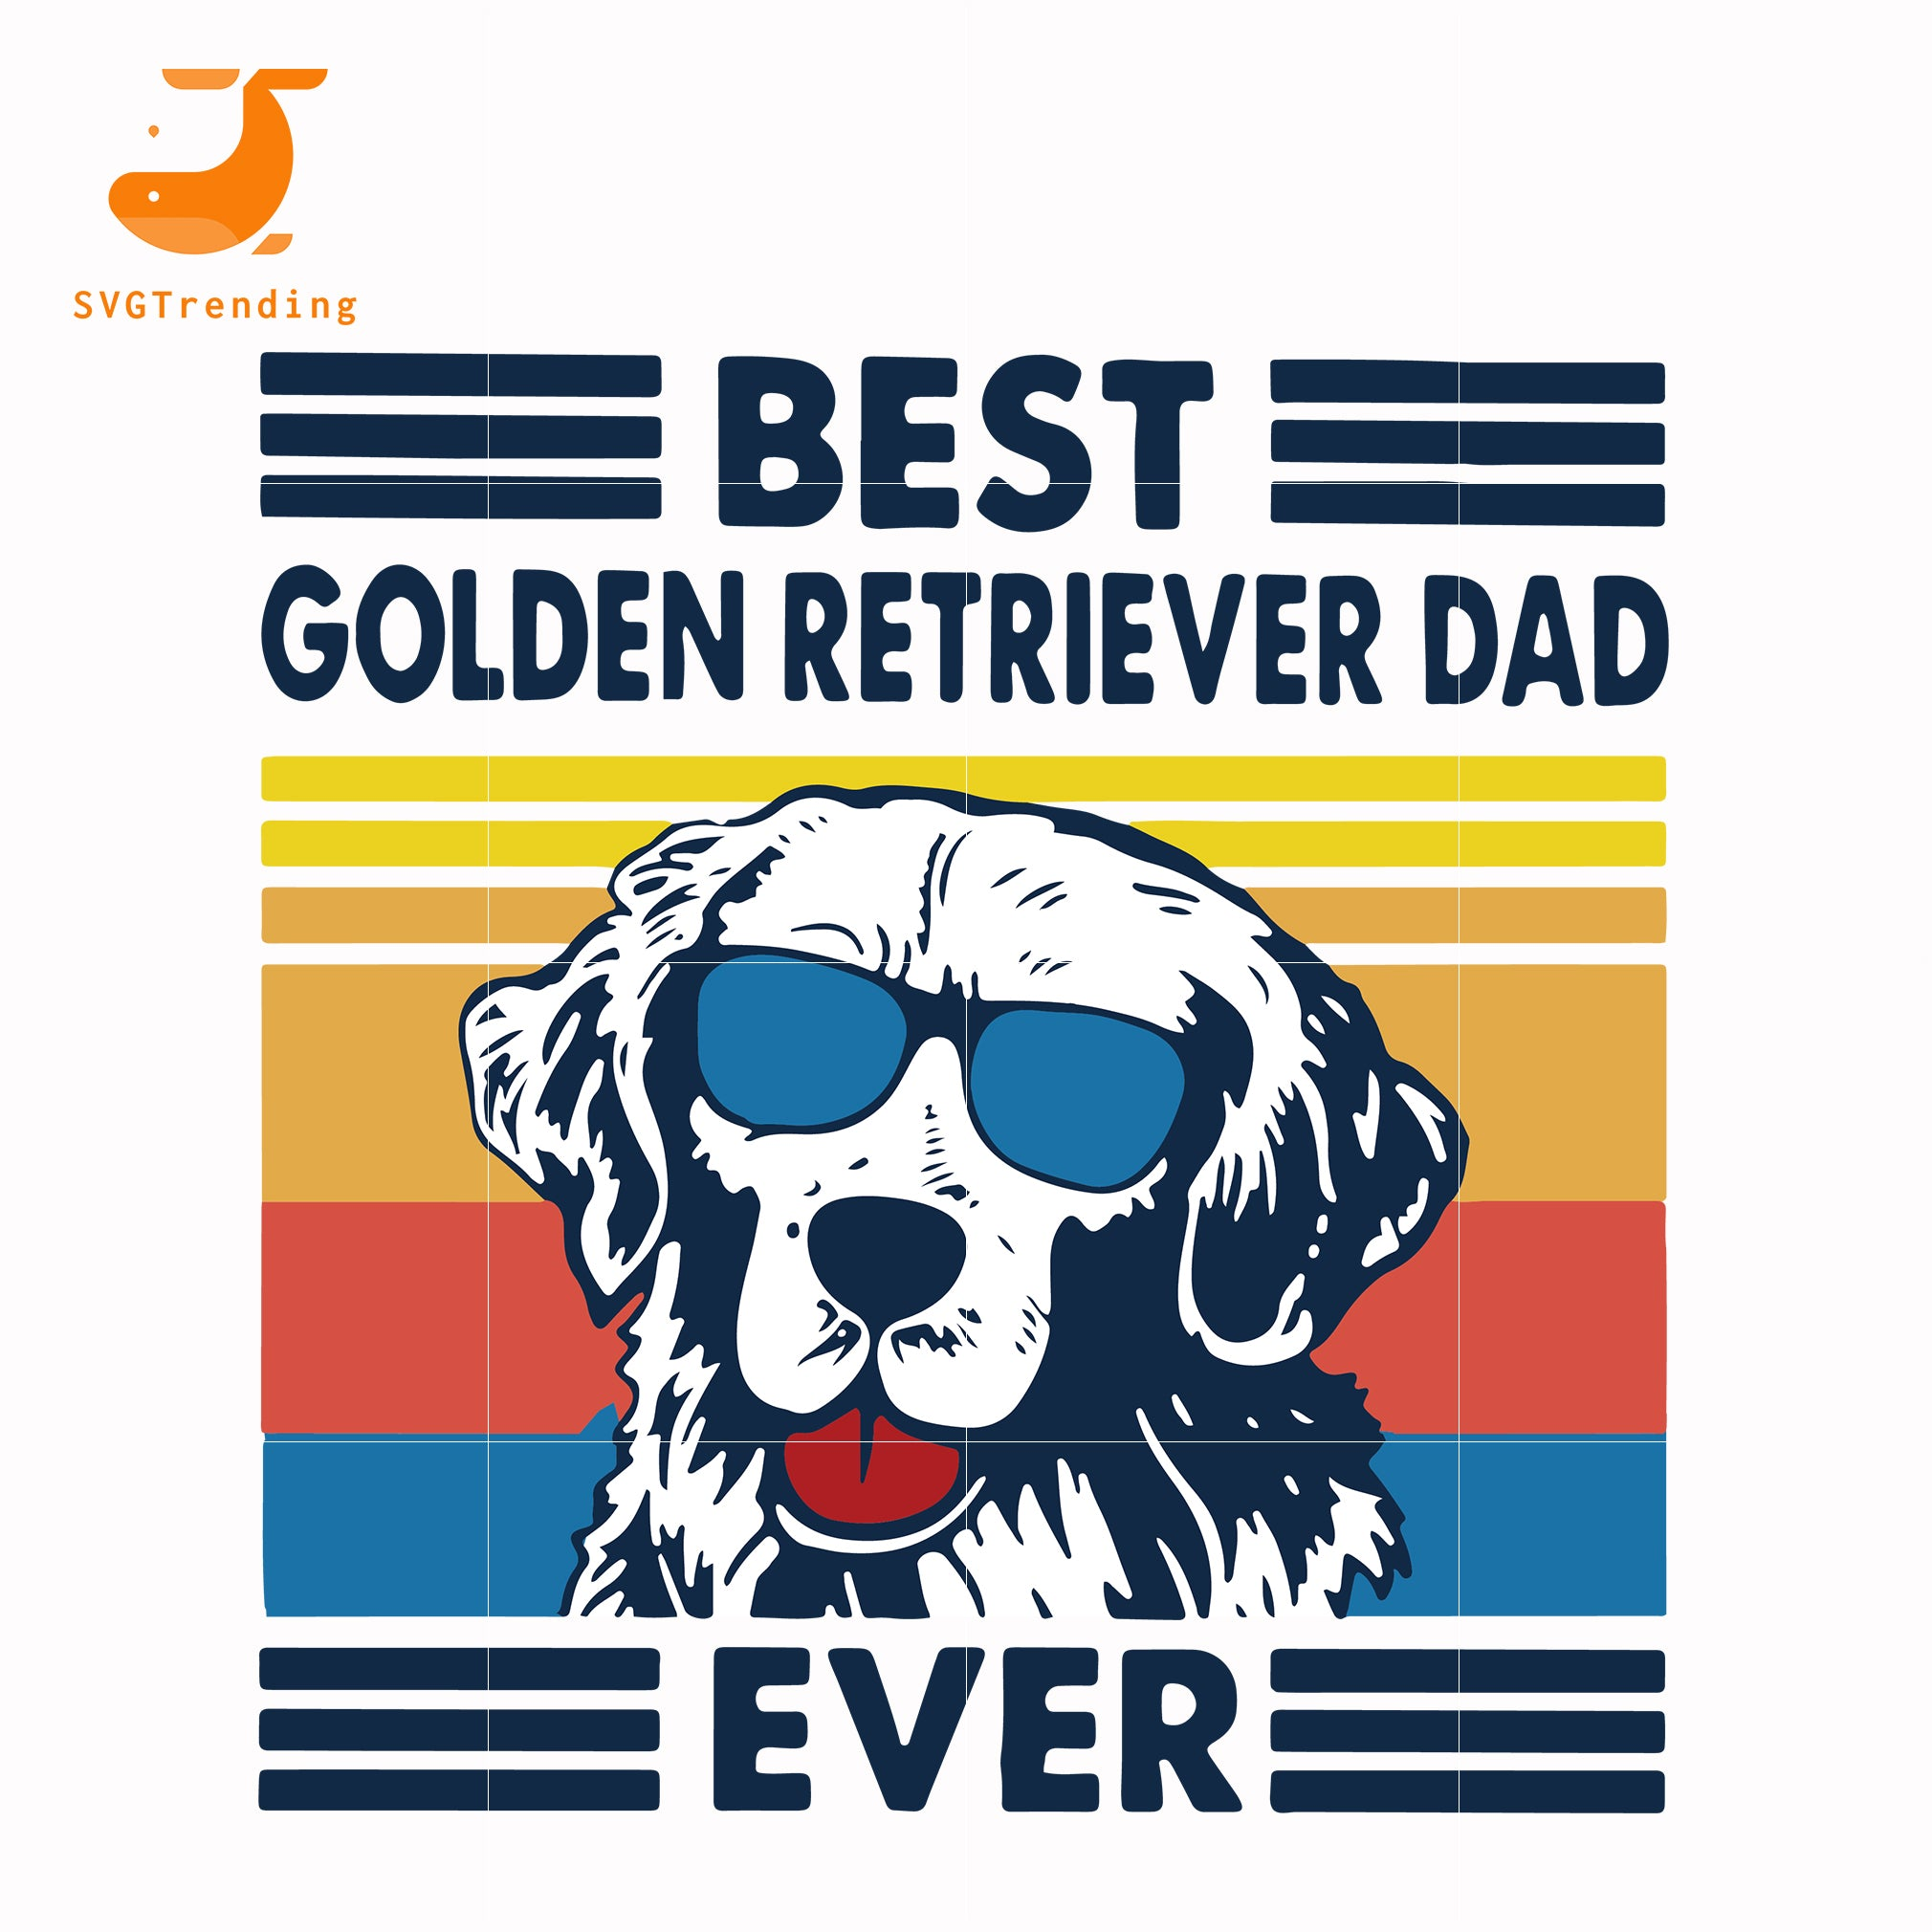 Best golden retriever dad ever svg, png, dxf, eps, digital file FTD30